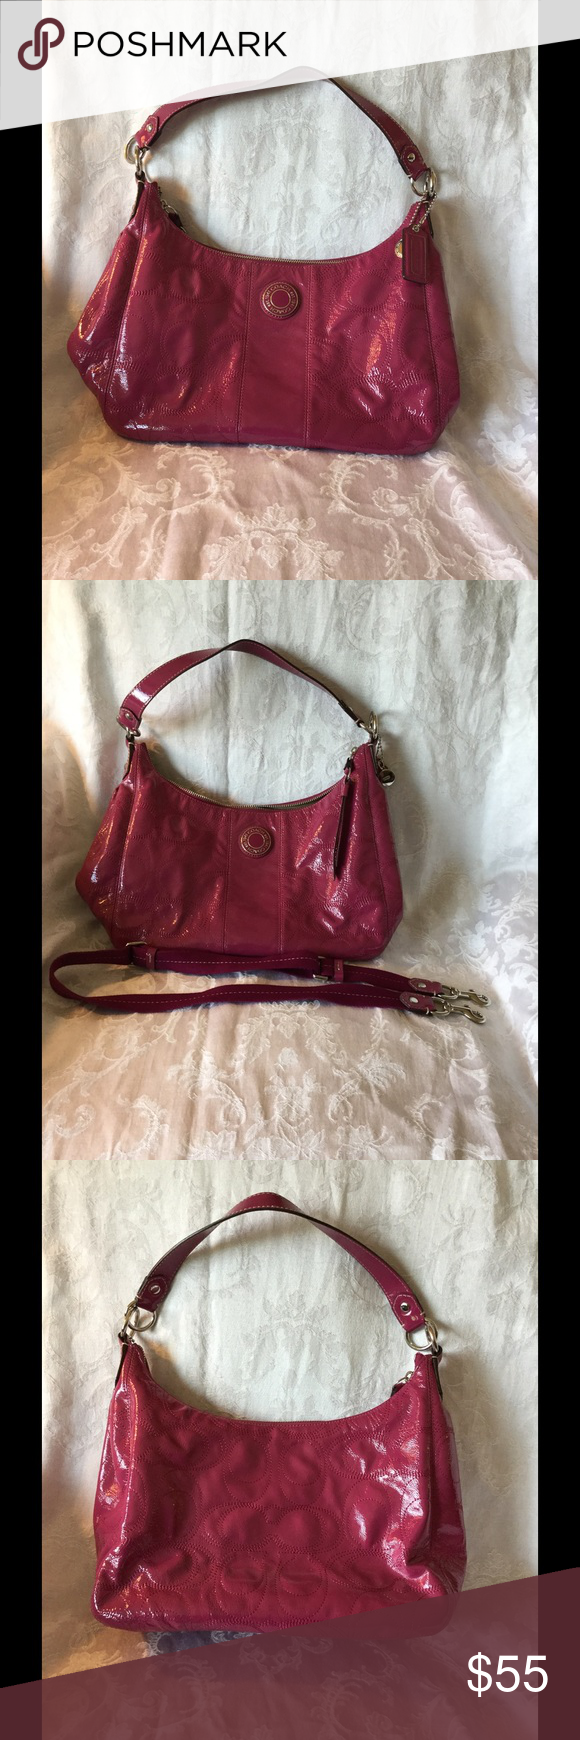 Coach Patent Magenta Hobo Coach patent magenta hobo bag. Has a removable strap so you can use it as a shoulder bag or purse. It is 15 inches long and 9 inches tall. The C's are stitches into the material. Used but like new with no wear and tear. Coach Bags Hobos